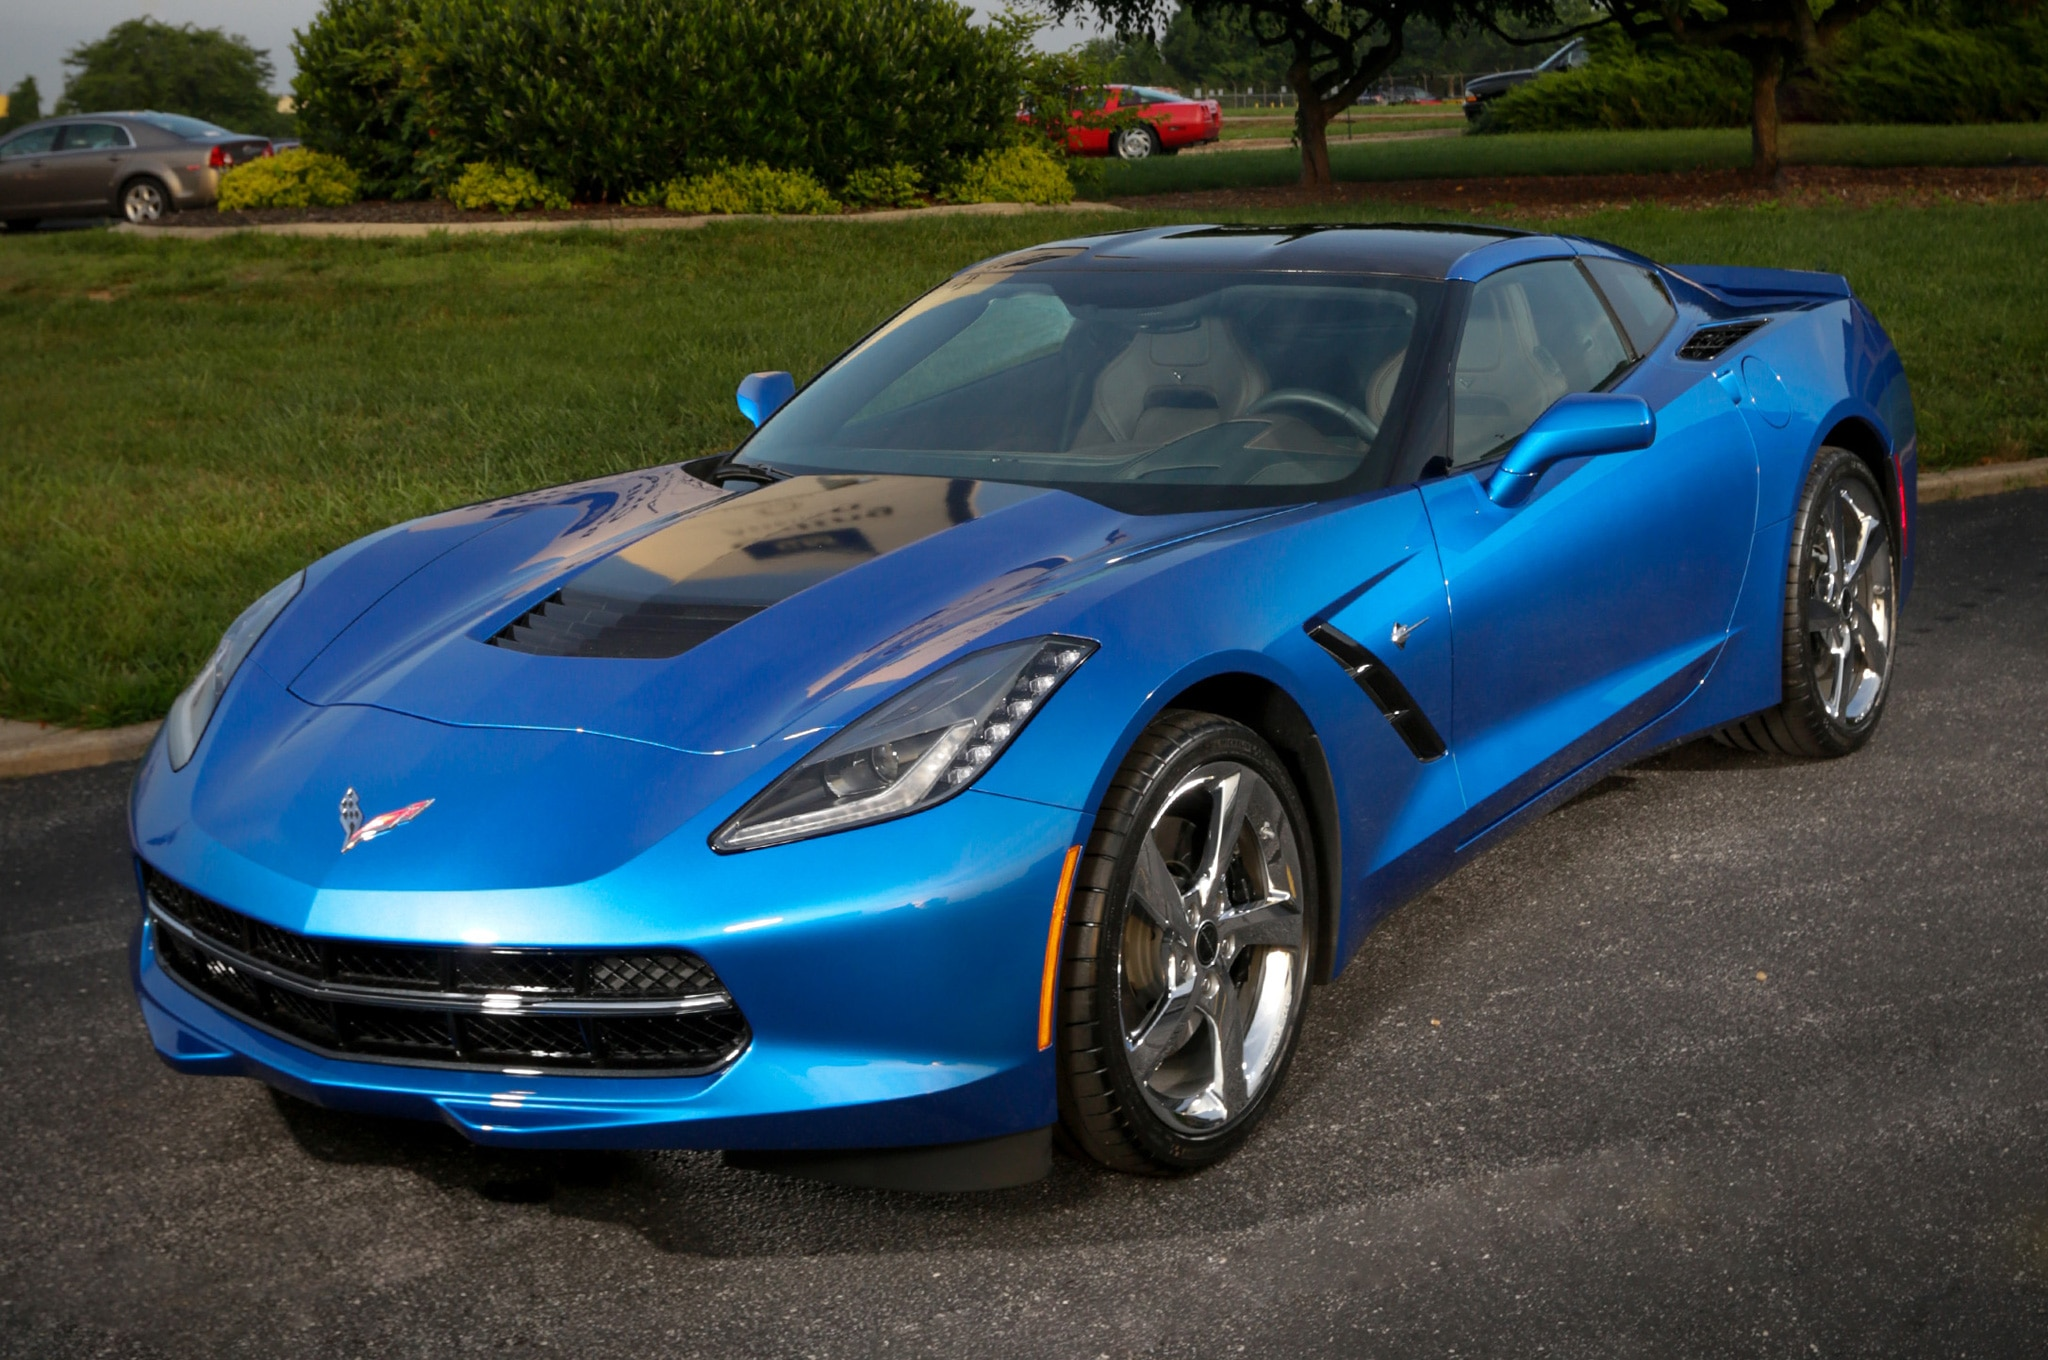 2014 Chevrolet Corvette Stingray Premiere Edition Front Three Quarters View1